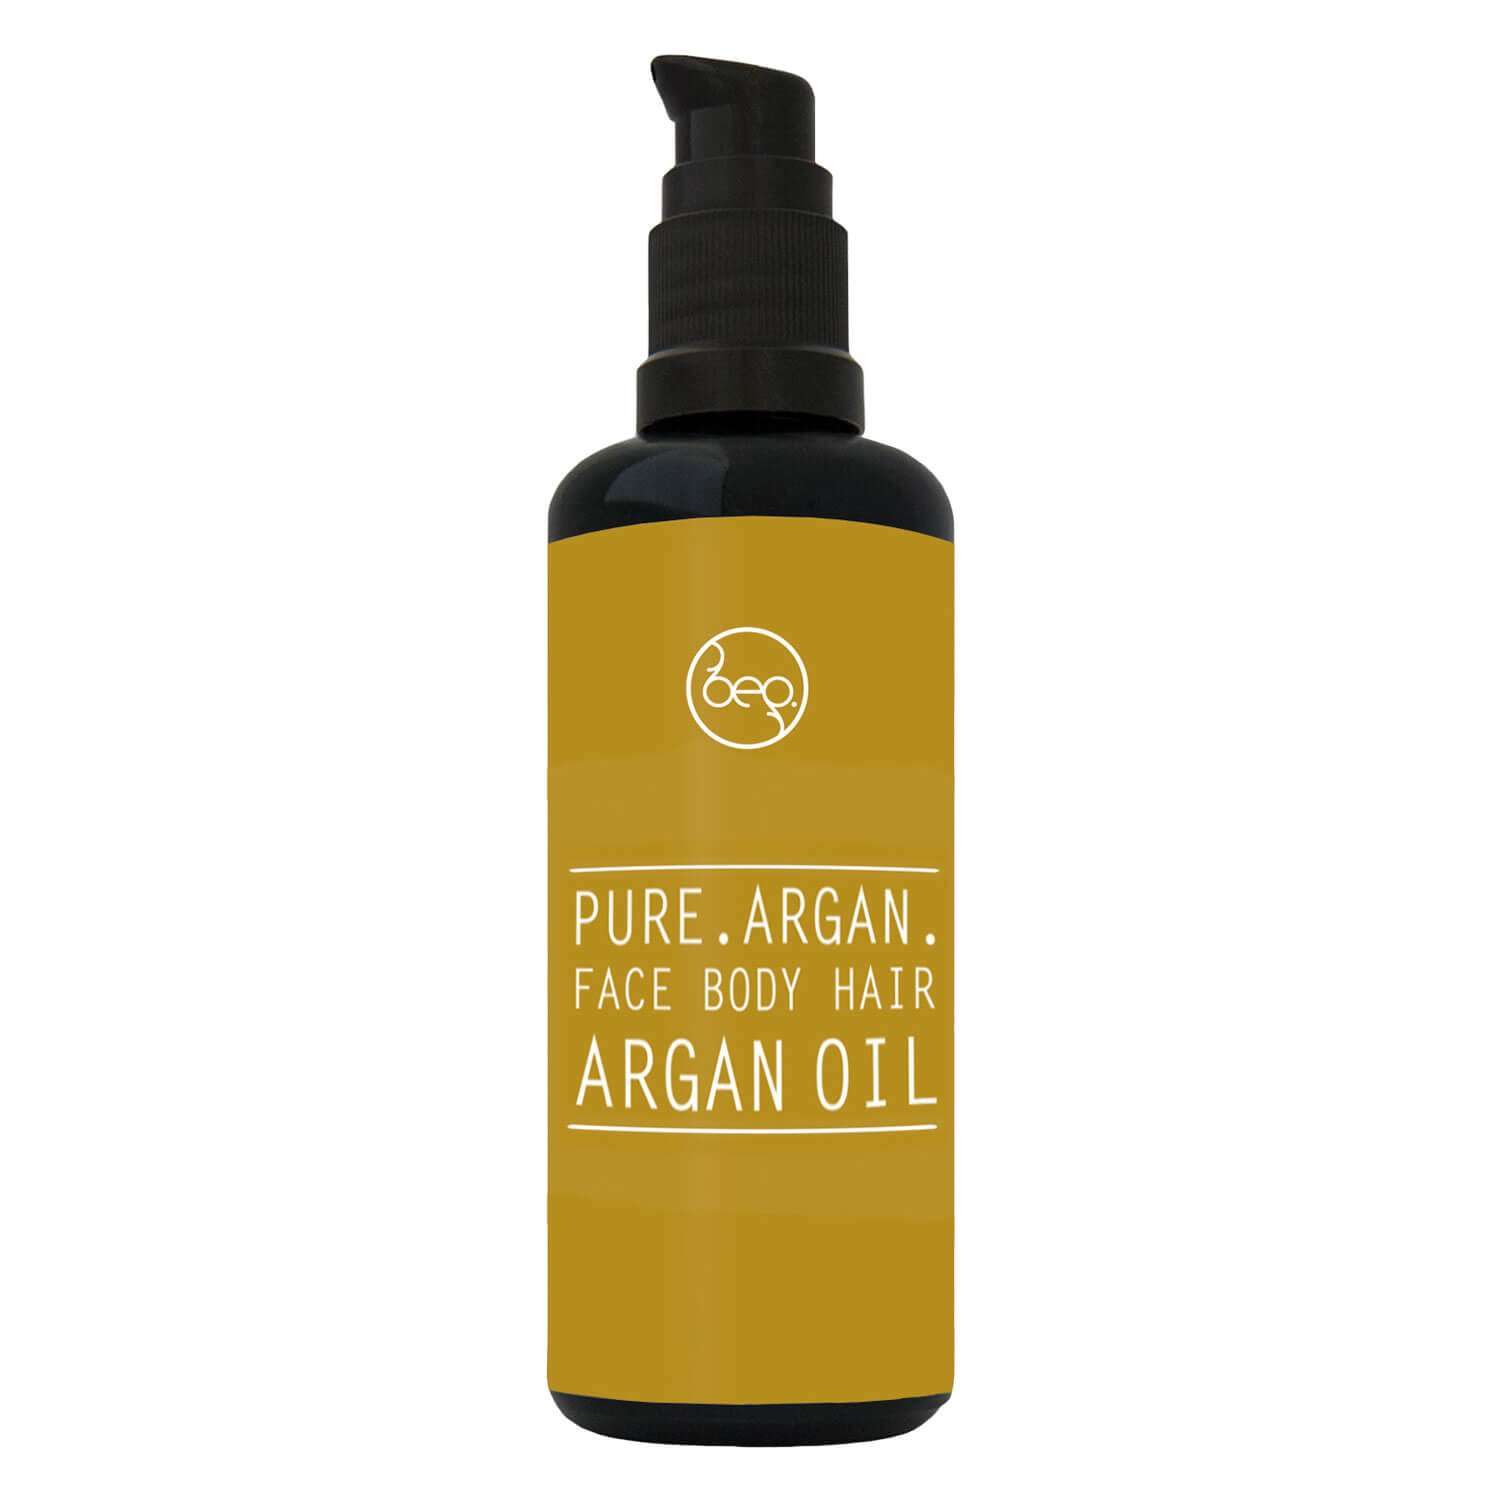 bepure - Argan Oil PURE ARGAN